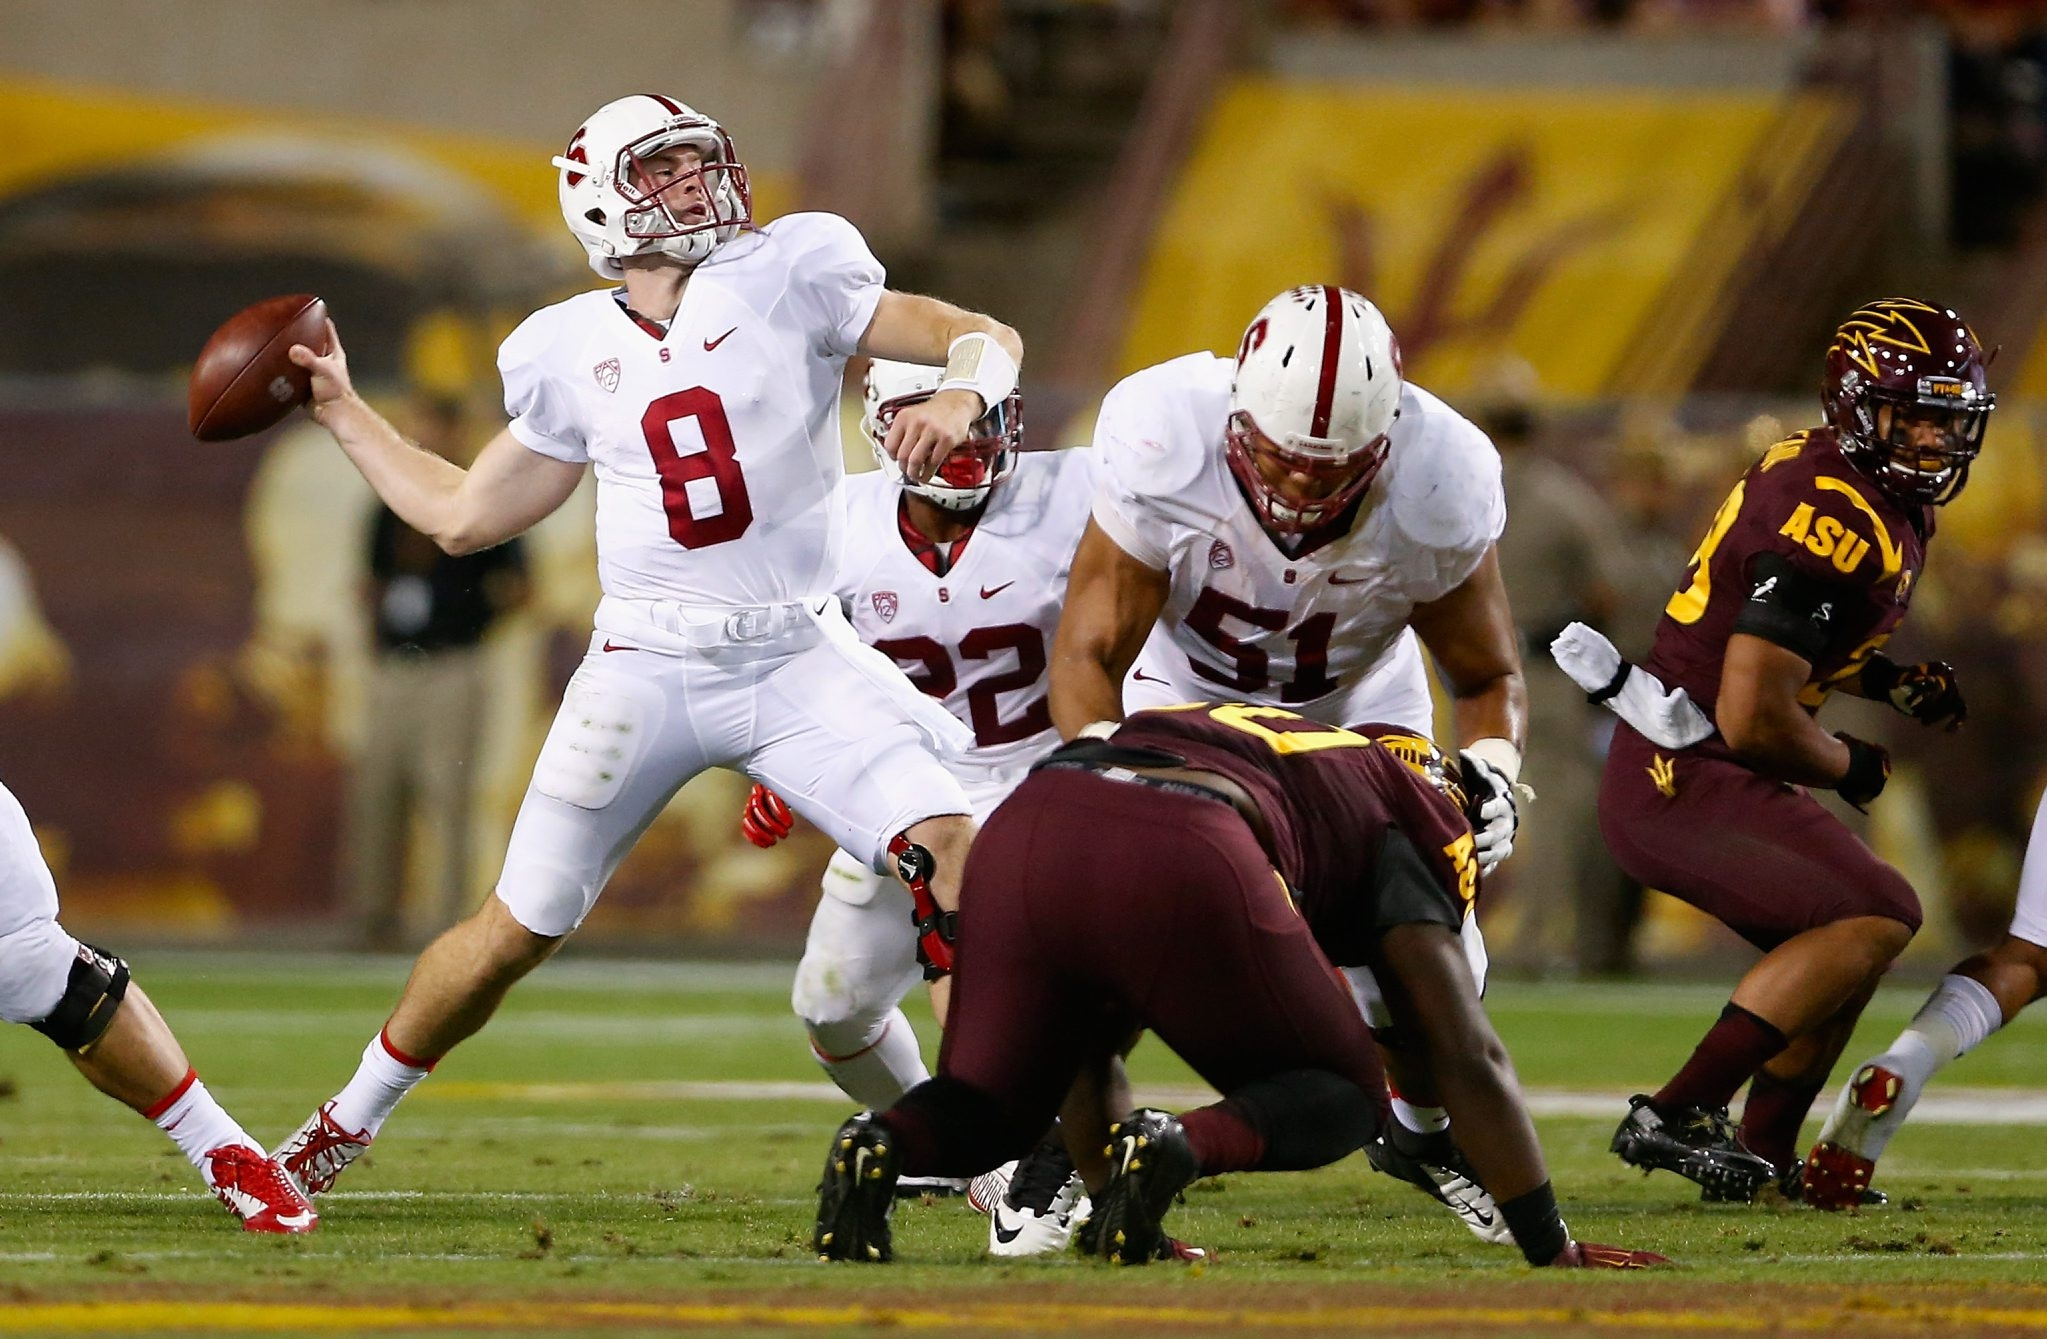 Kevin Hogan might be the most NFL-ready quarterback prospect in the draft, having run a pro-style offense at Stanford.